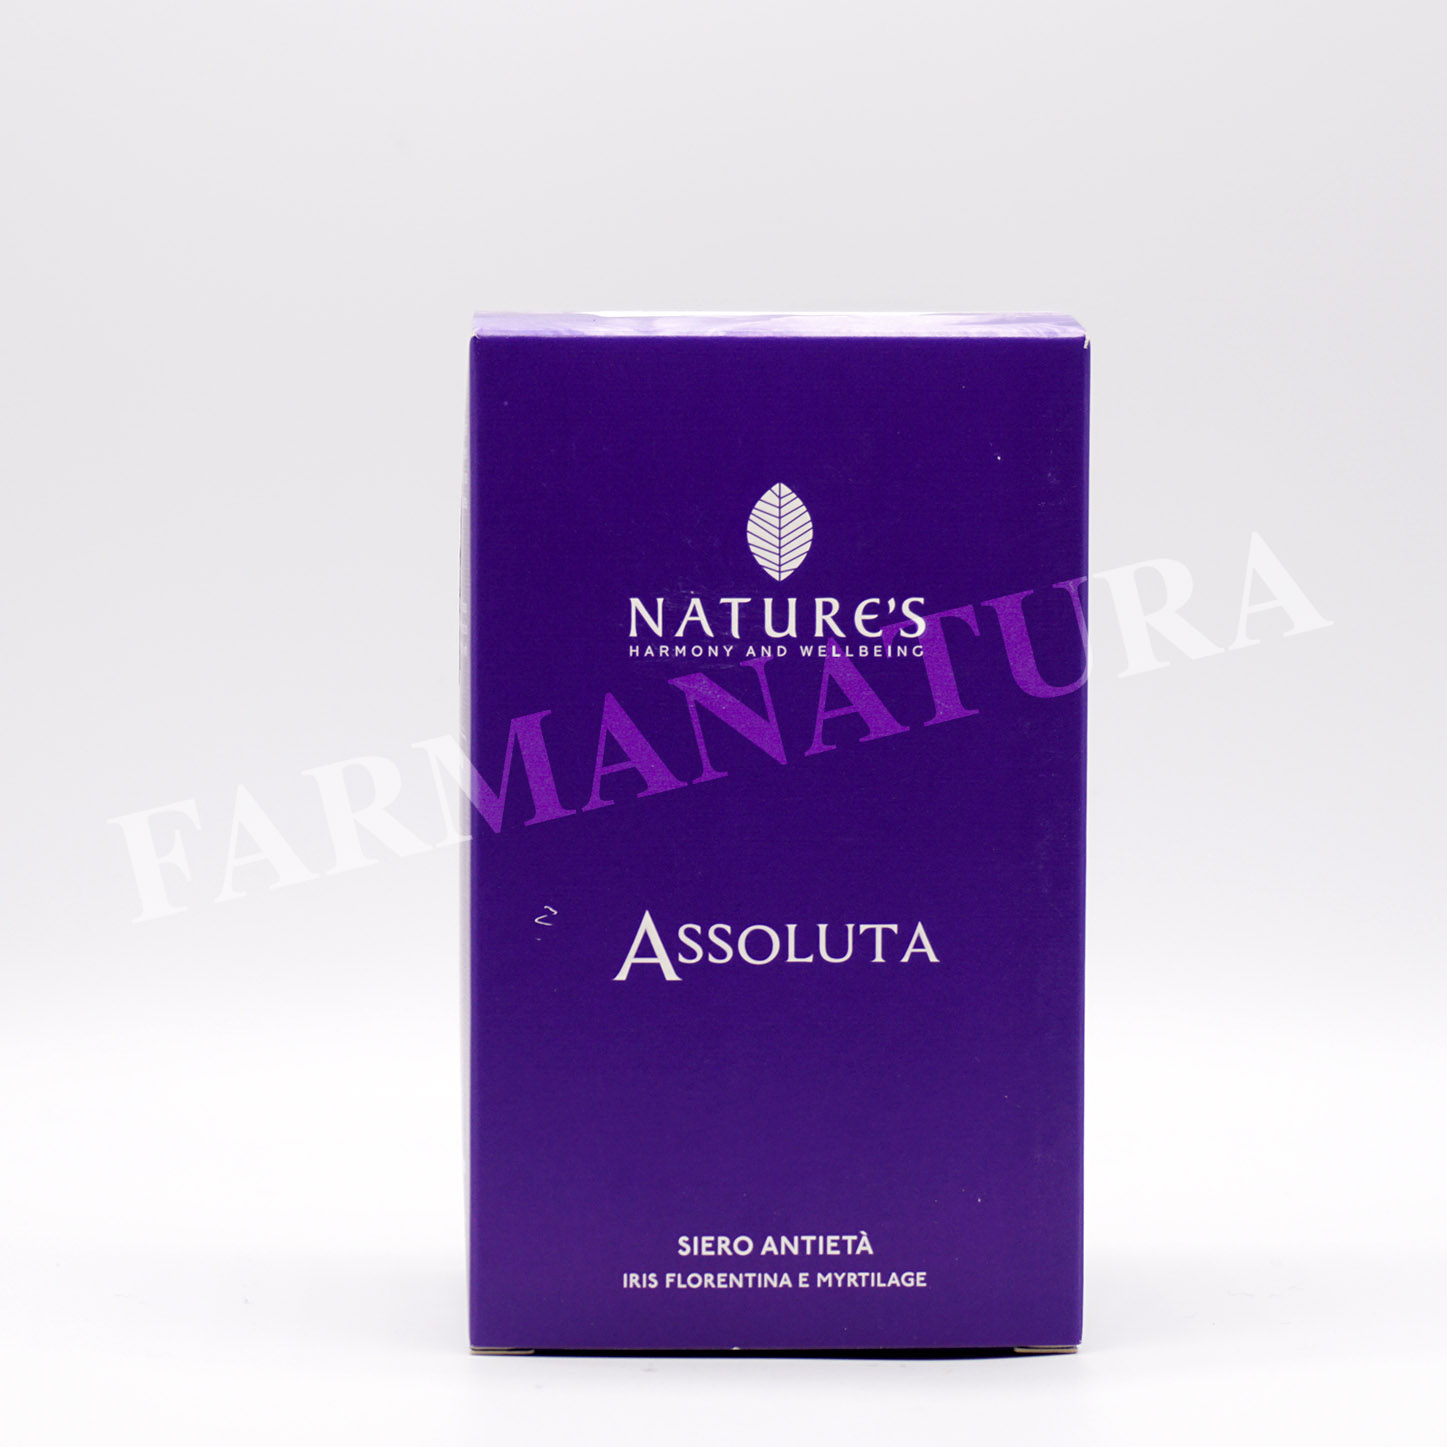 Assoluta Siero Viso Antieta' 30 Ml Nature'S